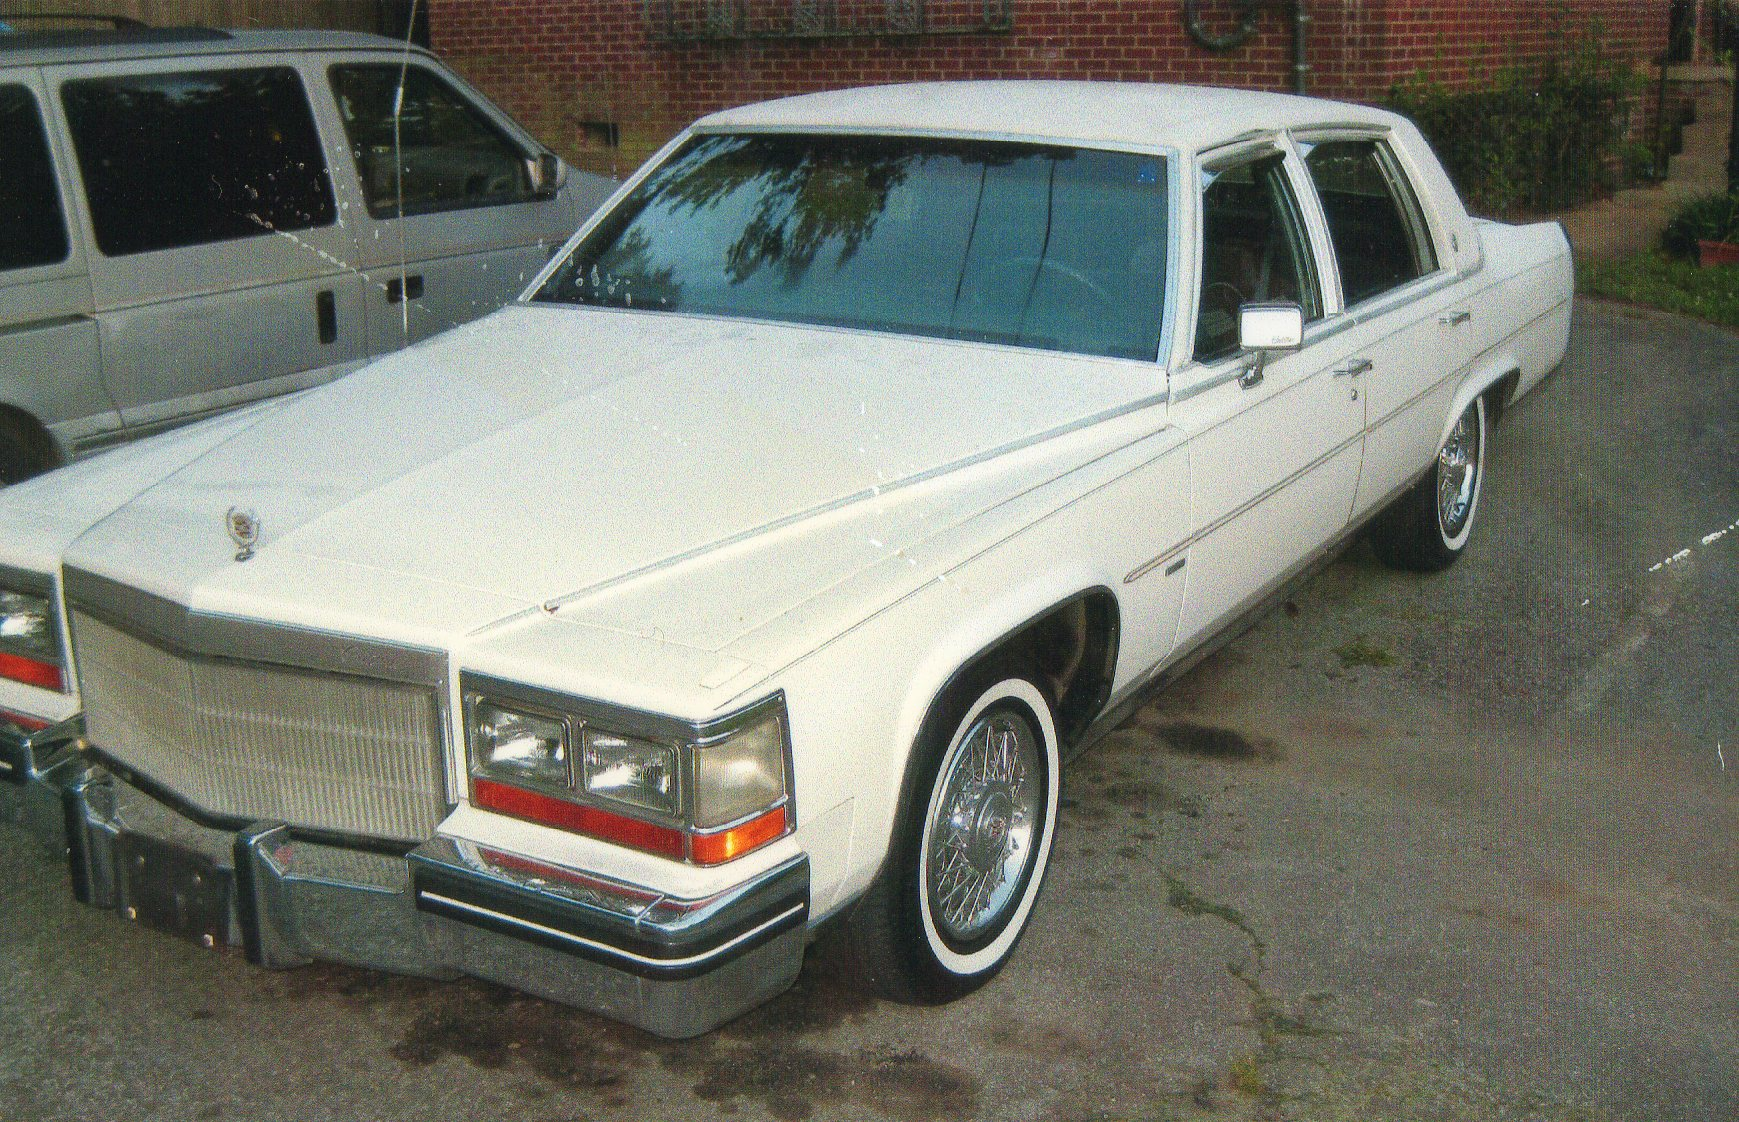 Cadillac Of A Lifetime: 1991 Cadillac Brougham — D is for Divine